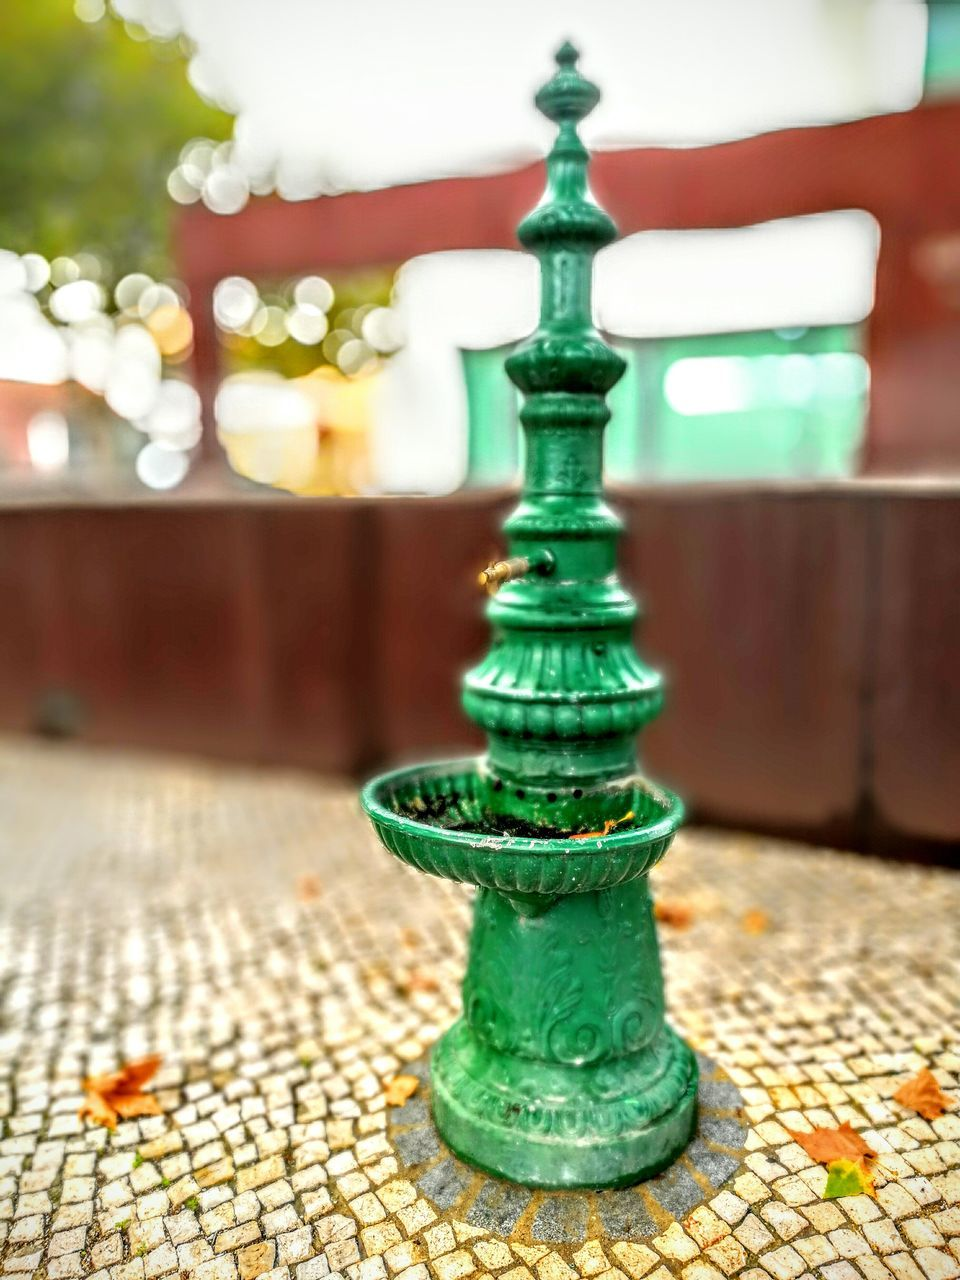 focus on foreground, no people, close-up, green color, chess piece, leisure games, indoors, table, day, chess, chess board